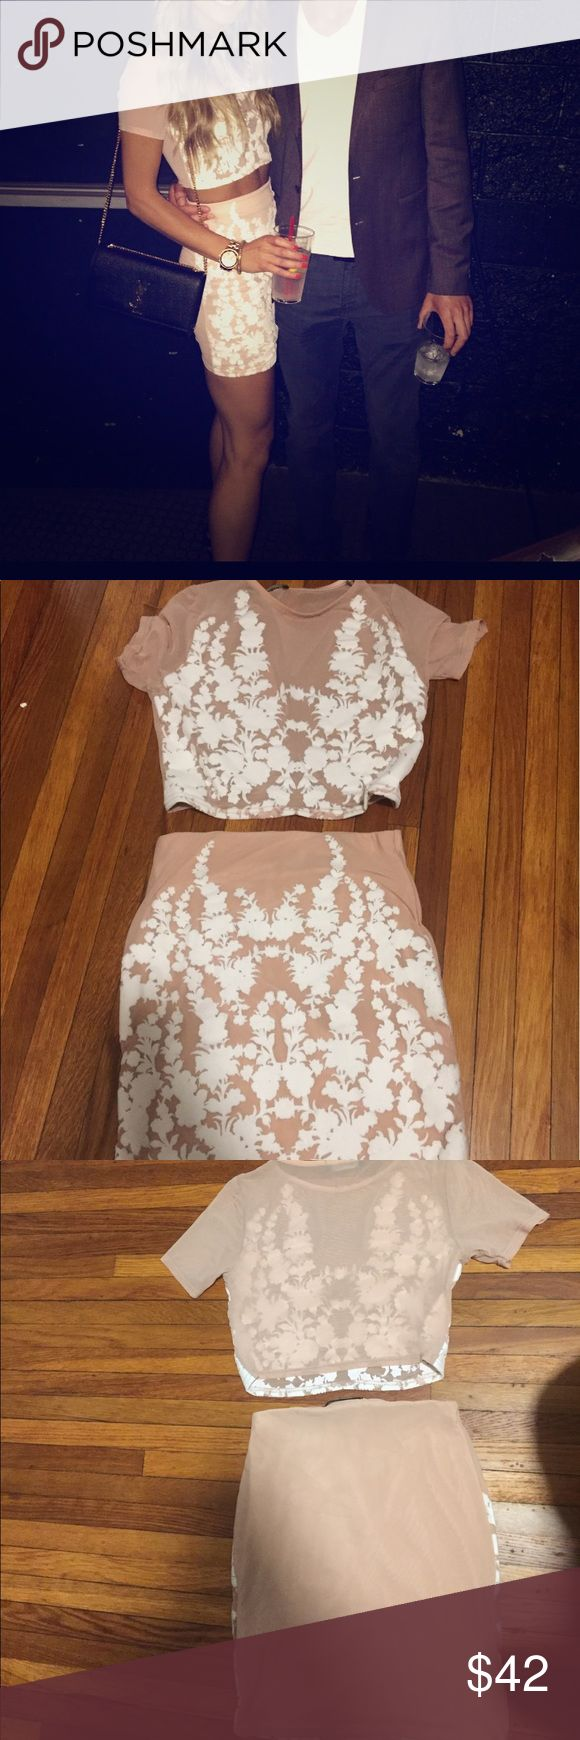 Missguided top&skirt set Like new, only worn one time for my birthday. In excellent condition no flaws. Skirt is lined, top is not but the details cover a lot of the front area. Tag was cutout but it's almost like a mesh fabric. Nude and white color. Size xs, but stretchy and could fit a small. Missguided Dresses Mini